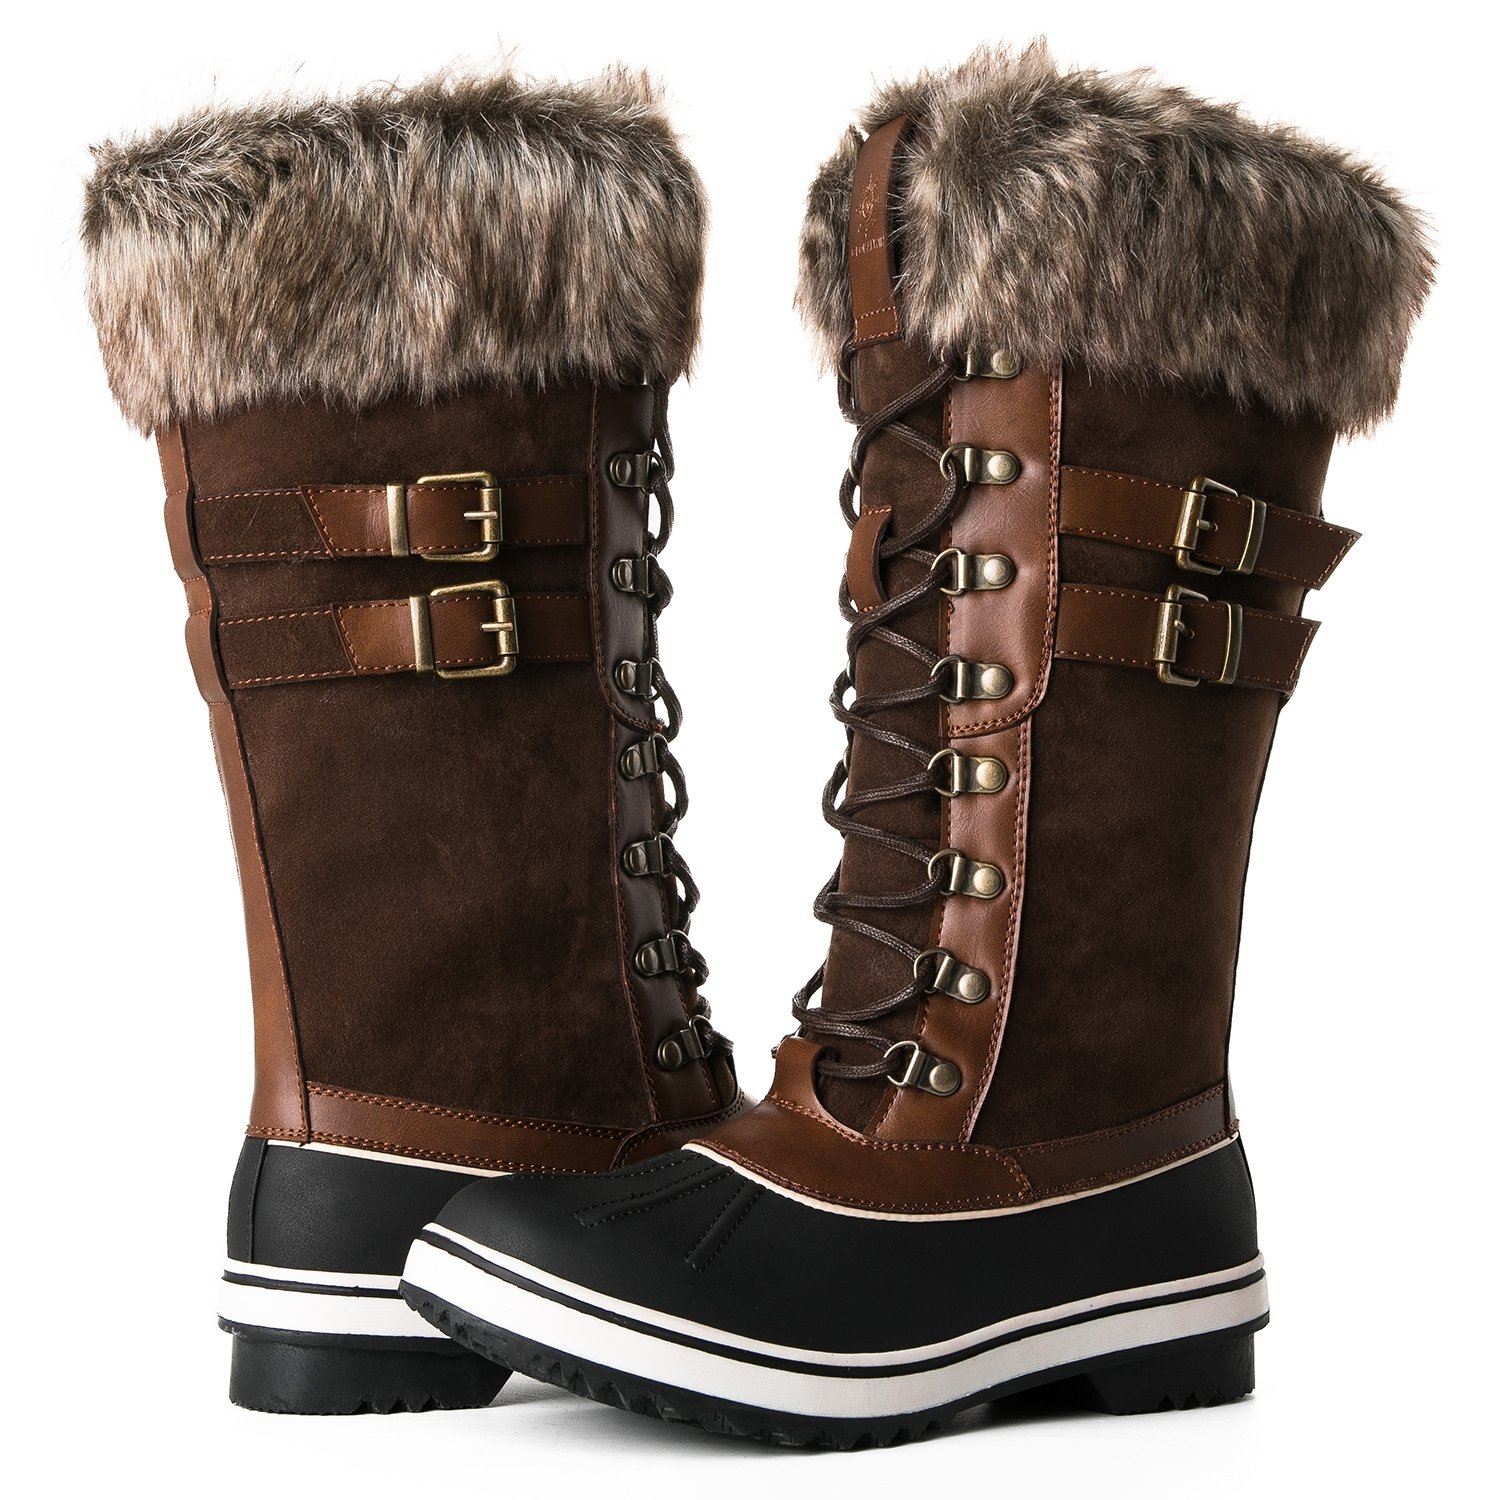 Global Win GLOBALWIN Women's 1730 Winter Snow Boots B075MMXFKC 10.5 B(M) US|1735brown